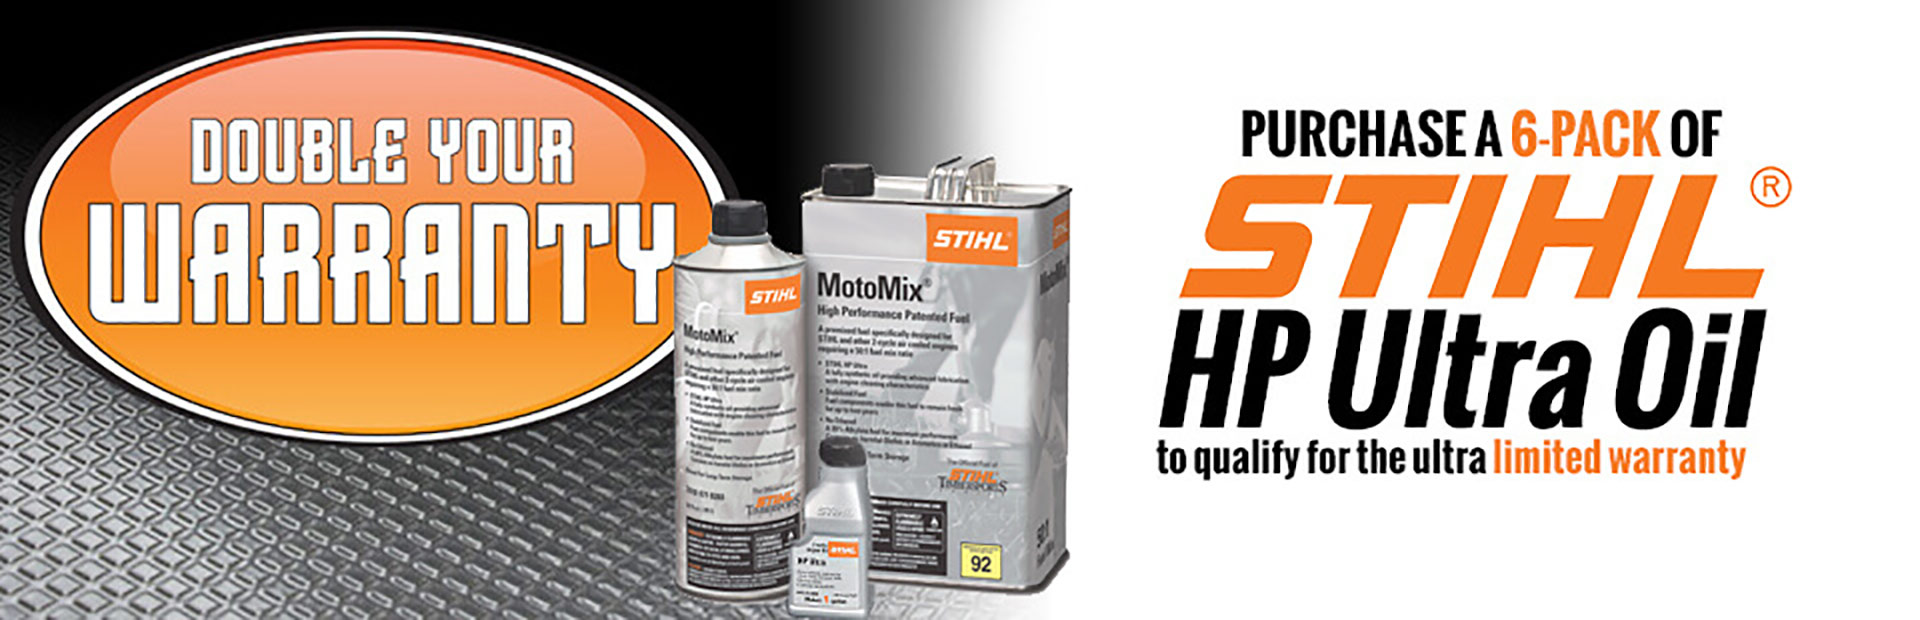 Purchase a 6-pack of STIHL HP Ultra Oil to qualify for the ultra limited warranty! Click here to view our selection.